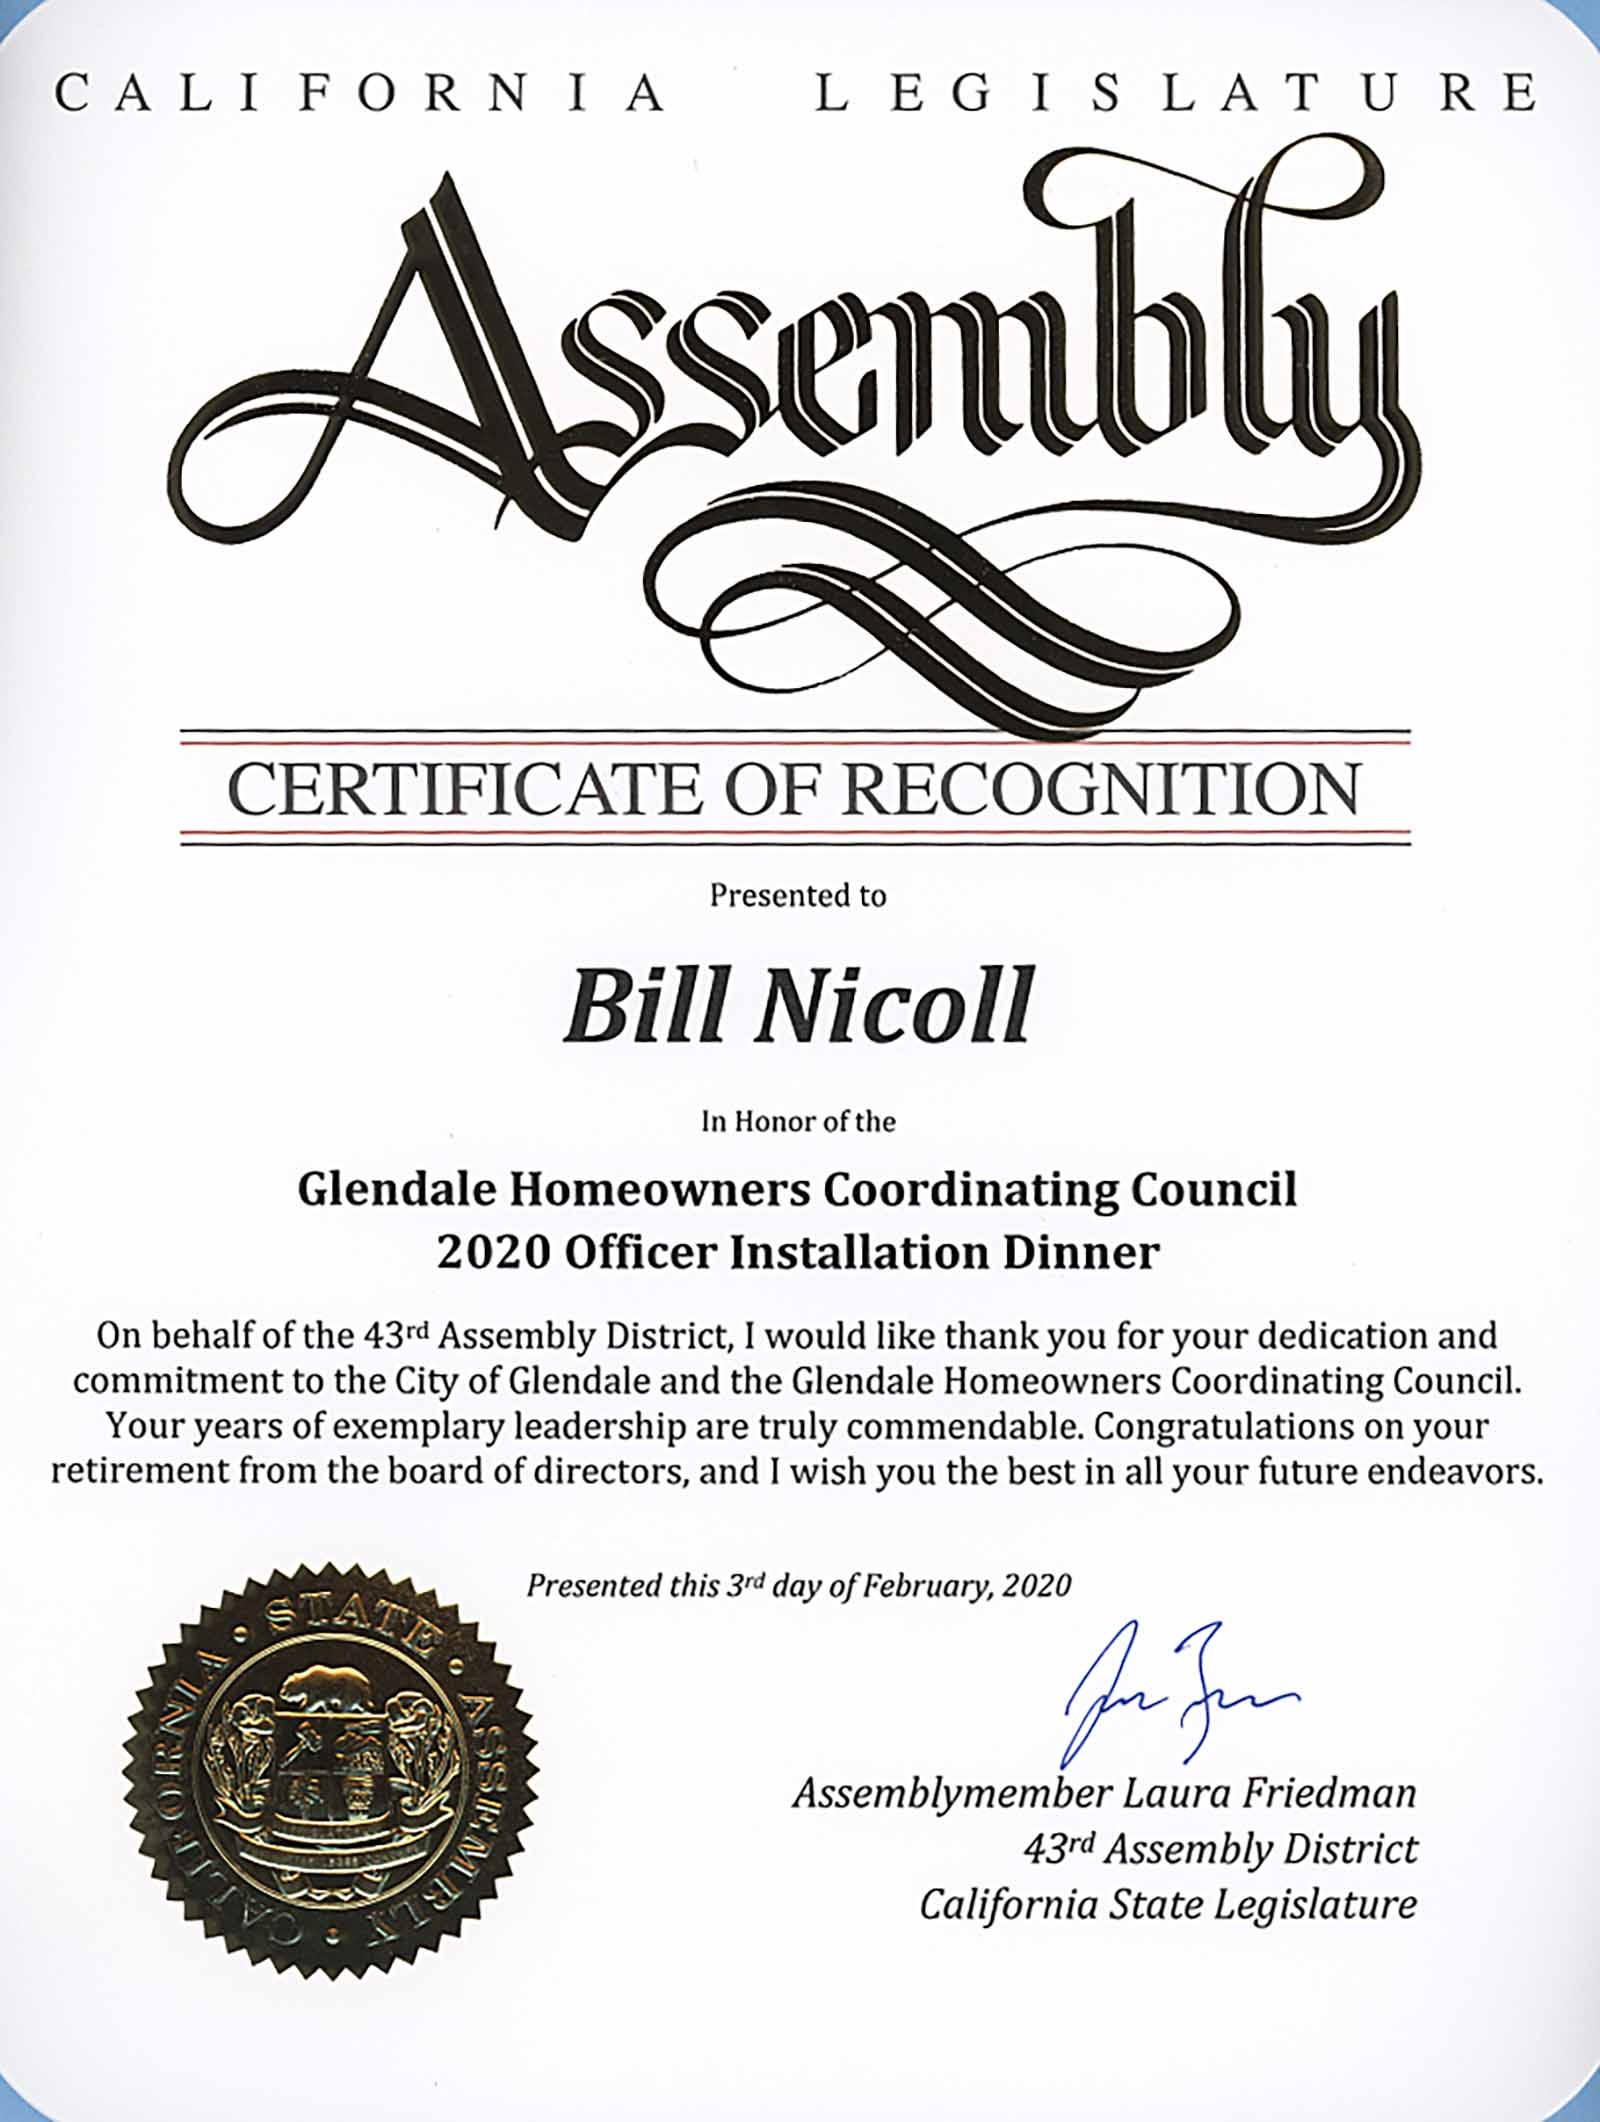 certificate of recognition for Glendale Bill Nicholl